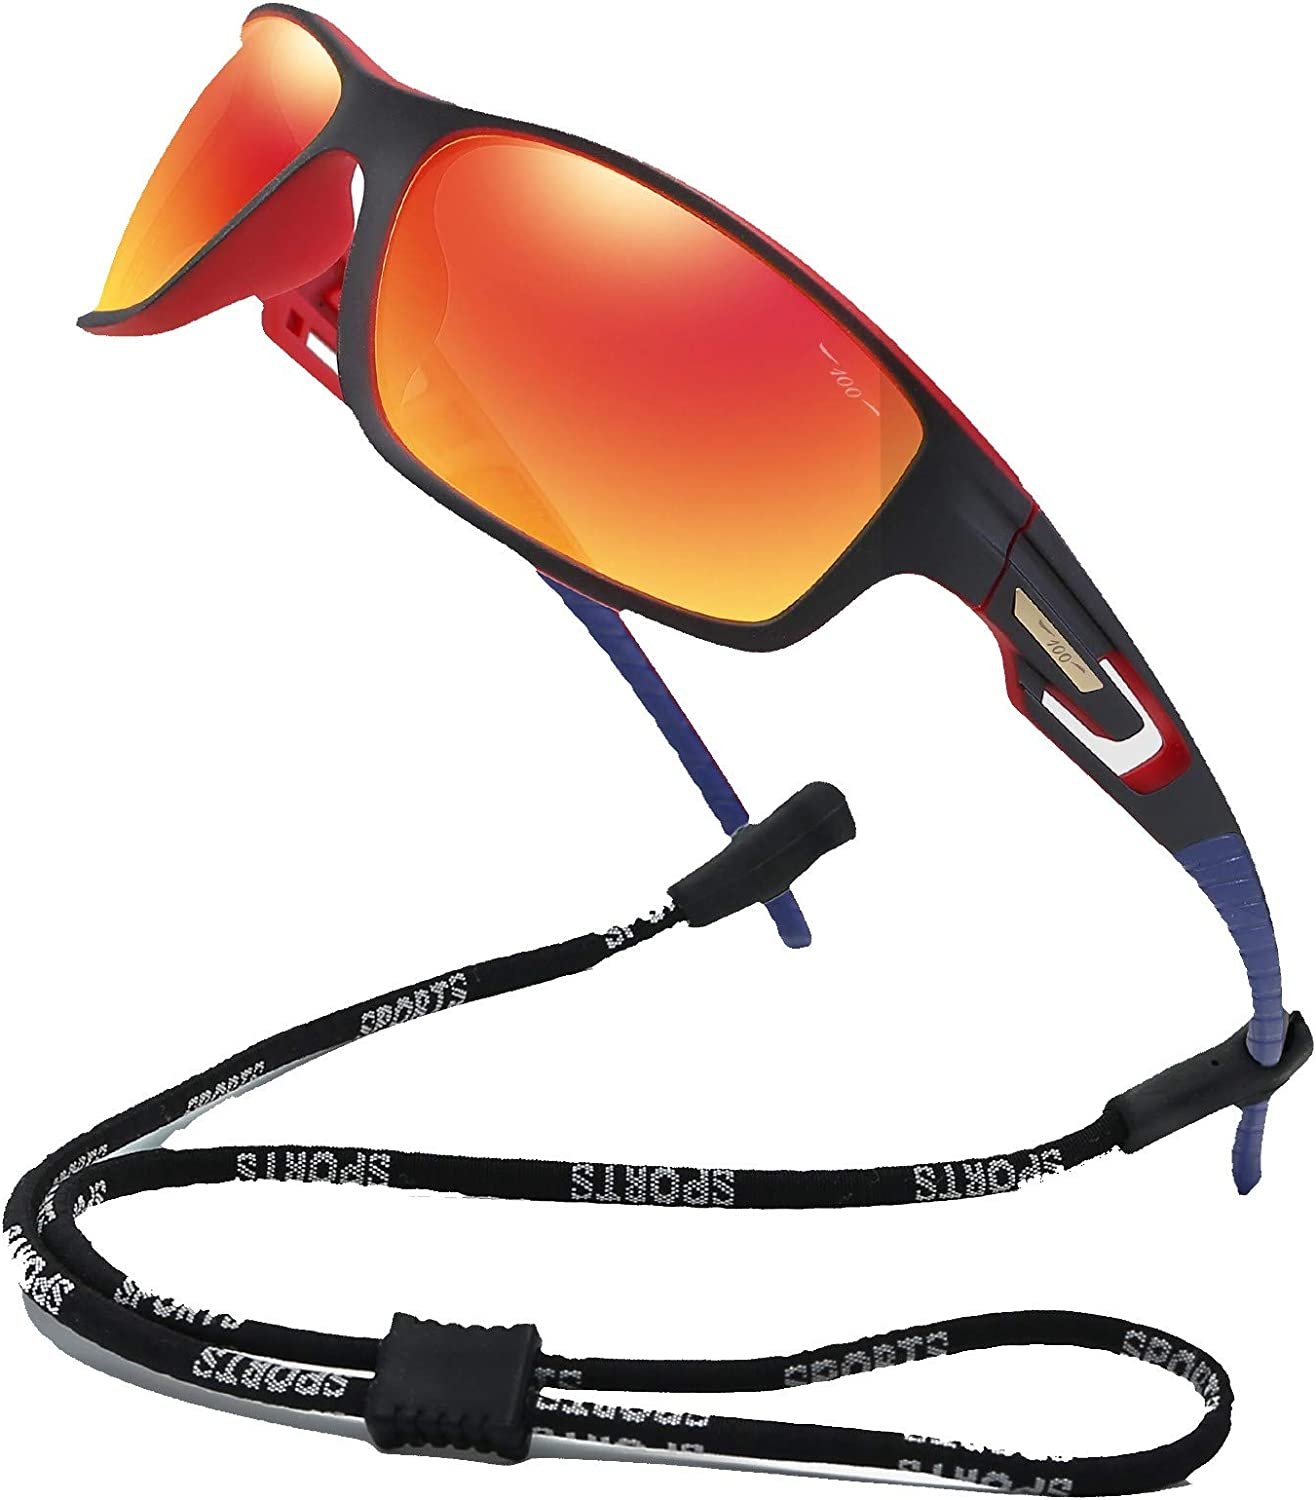 100 CLASSIC Sports Sunglasses Polarized Lens with TR90 Frame for Men Women